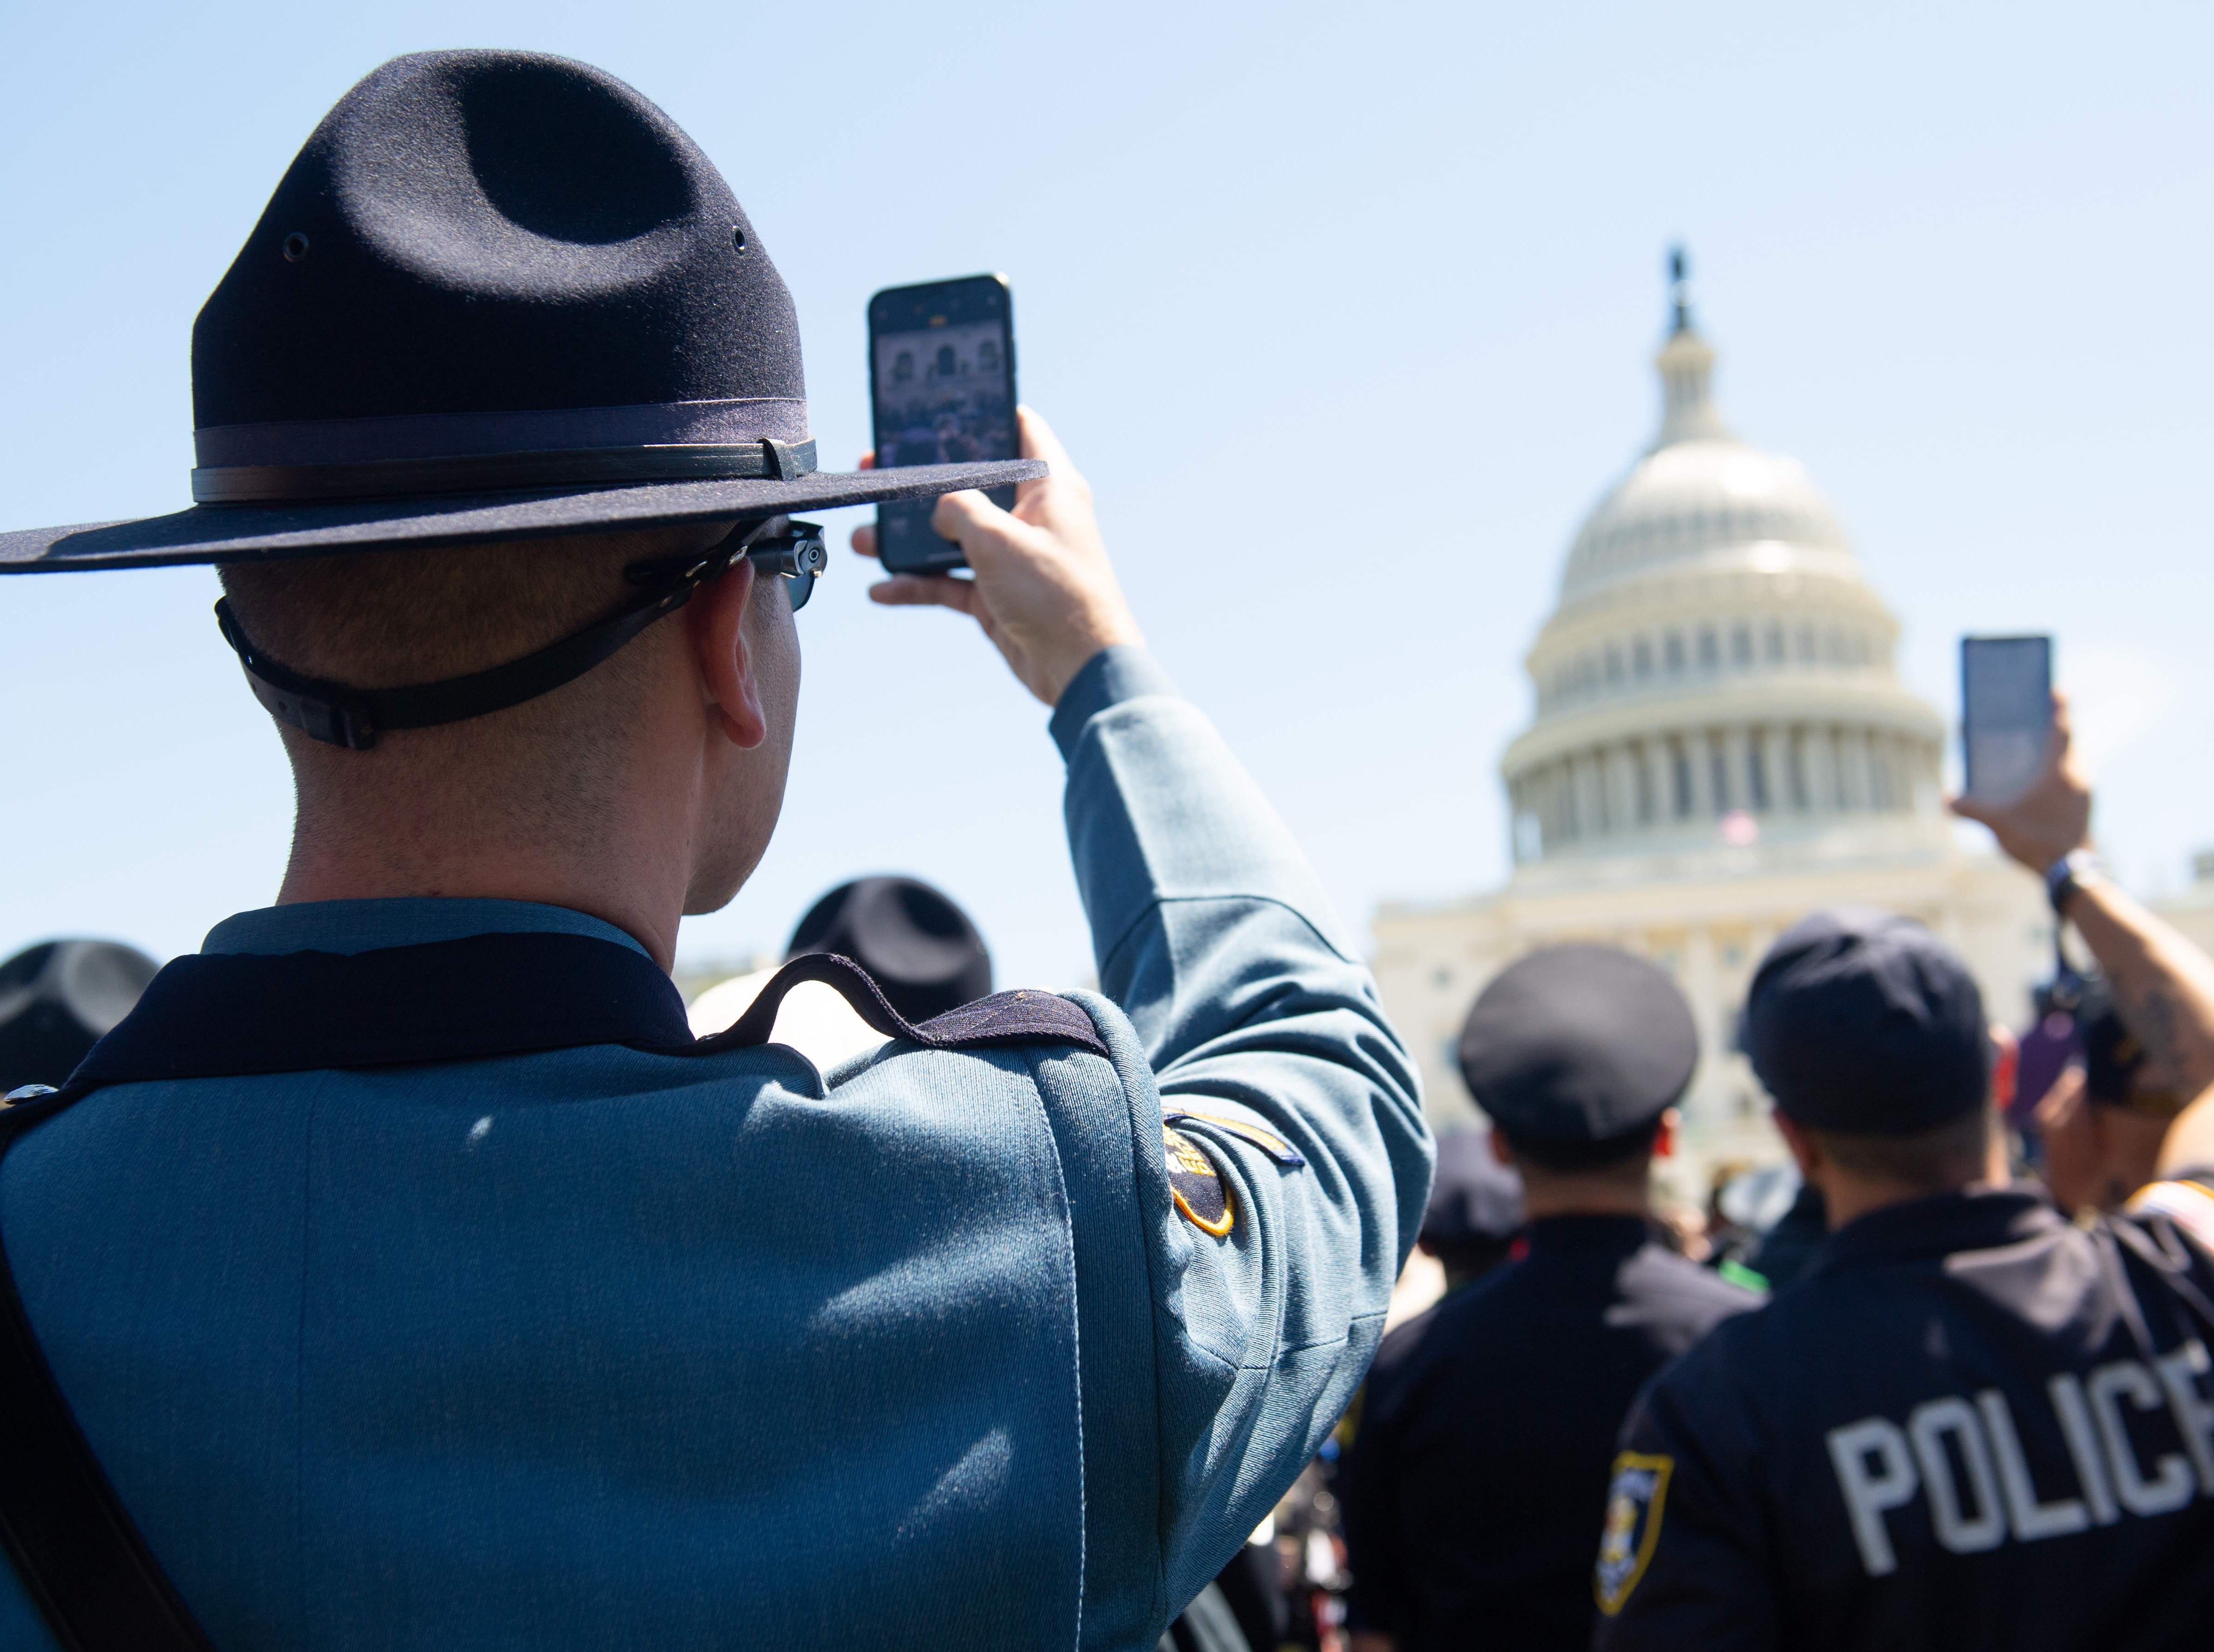 Members of police departments around the US attend the 38th Annual National Peace Officers' Memorial Service honoring law enforcement officers who were killed in the line of duty.